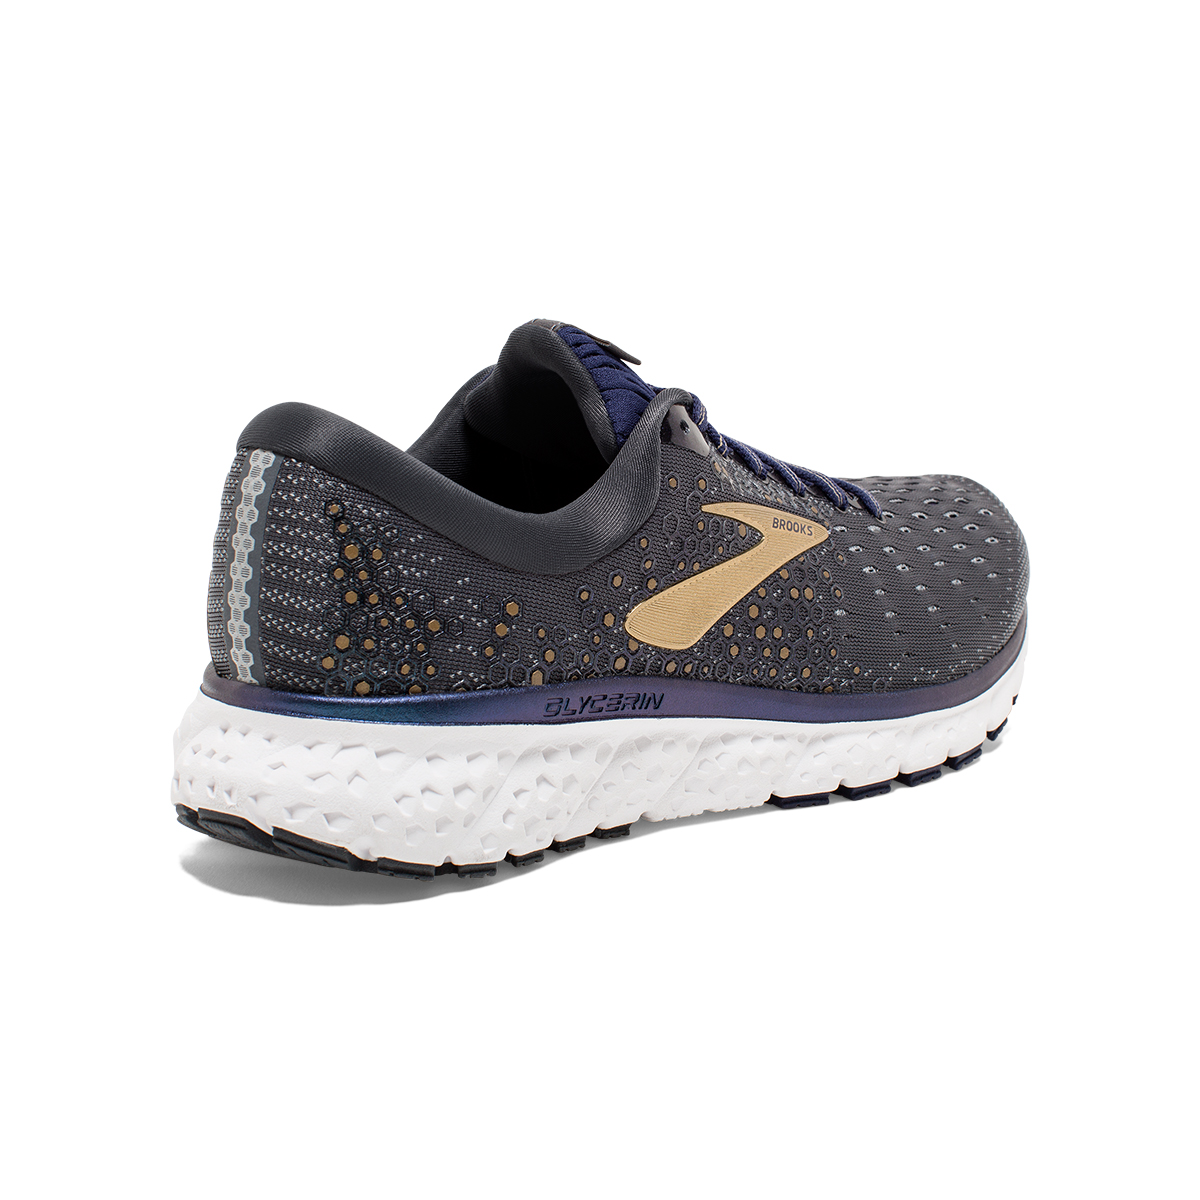 Men's Brooks Glycerin 17 Running Shoe - Color: Grey/Navy/Gold (Regular Width) - Size: 7, Grey/Navy/Gold, large, image 4